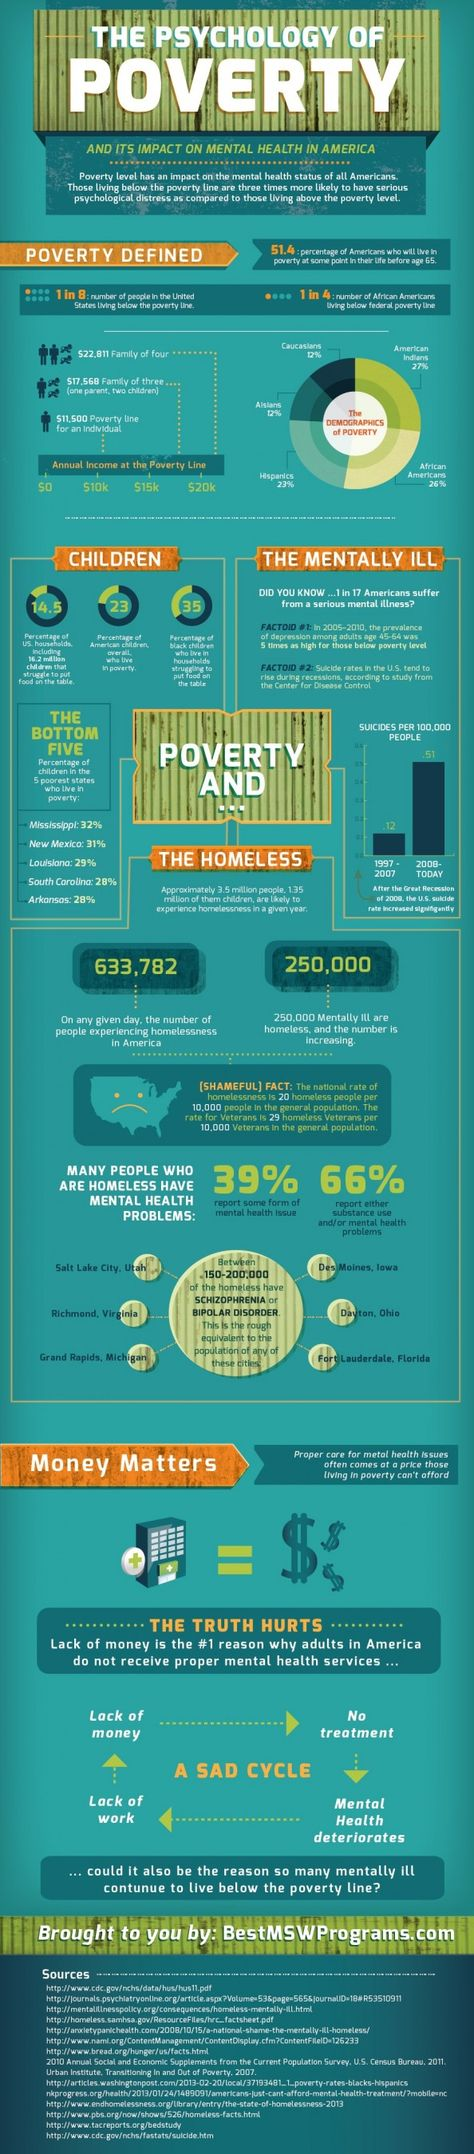 50 Realities Of Homelessness And Poverty Ideas Poverty Homeless Homelessness Awareness